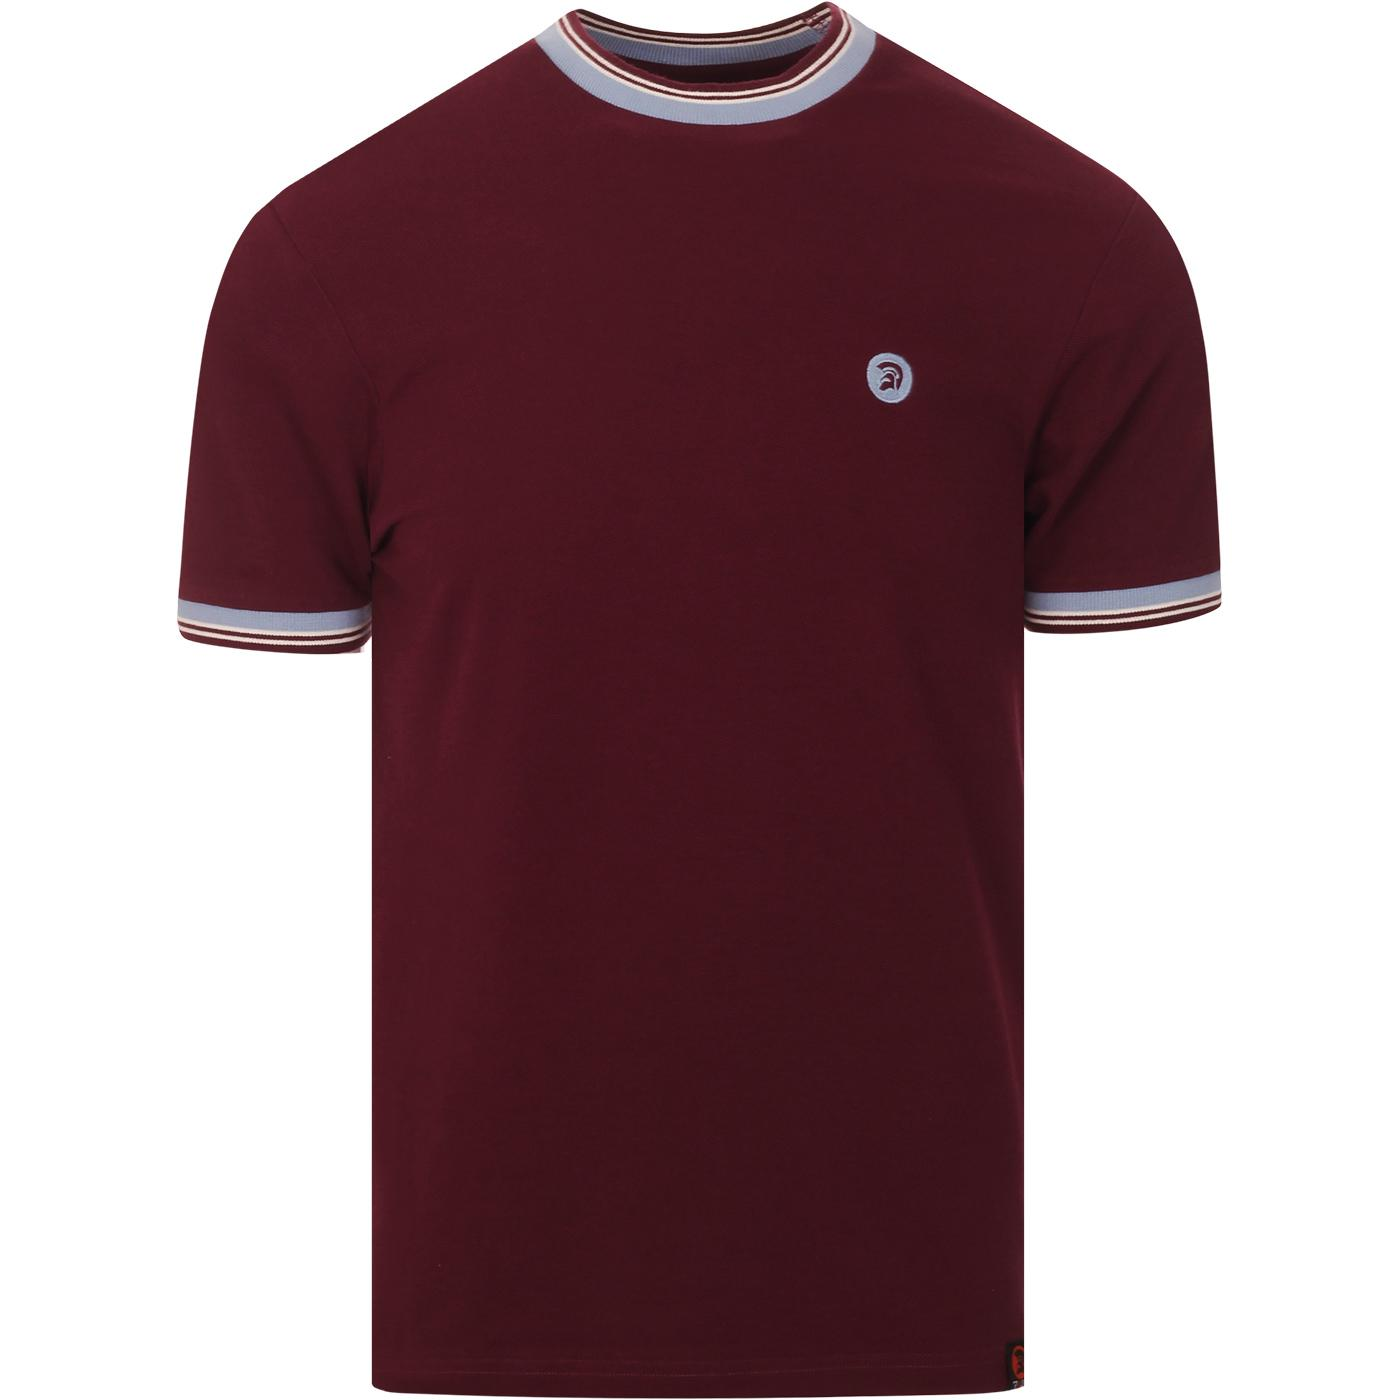 TROJAN RECORDS Contrast Trim Pique Ringer Tee PORT